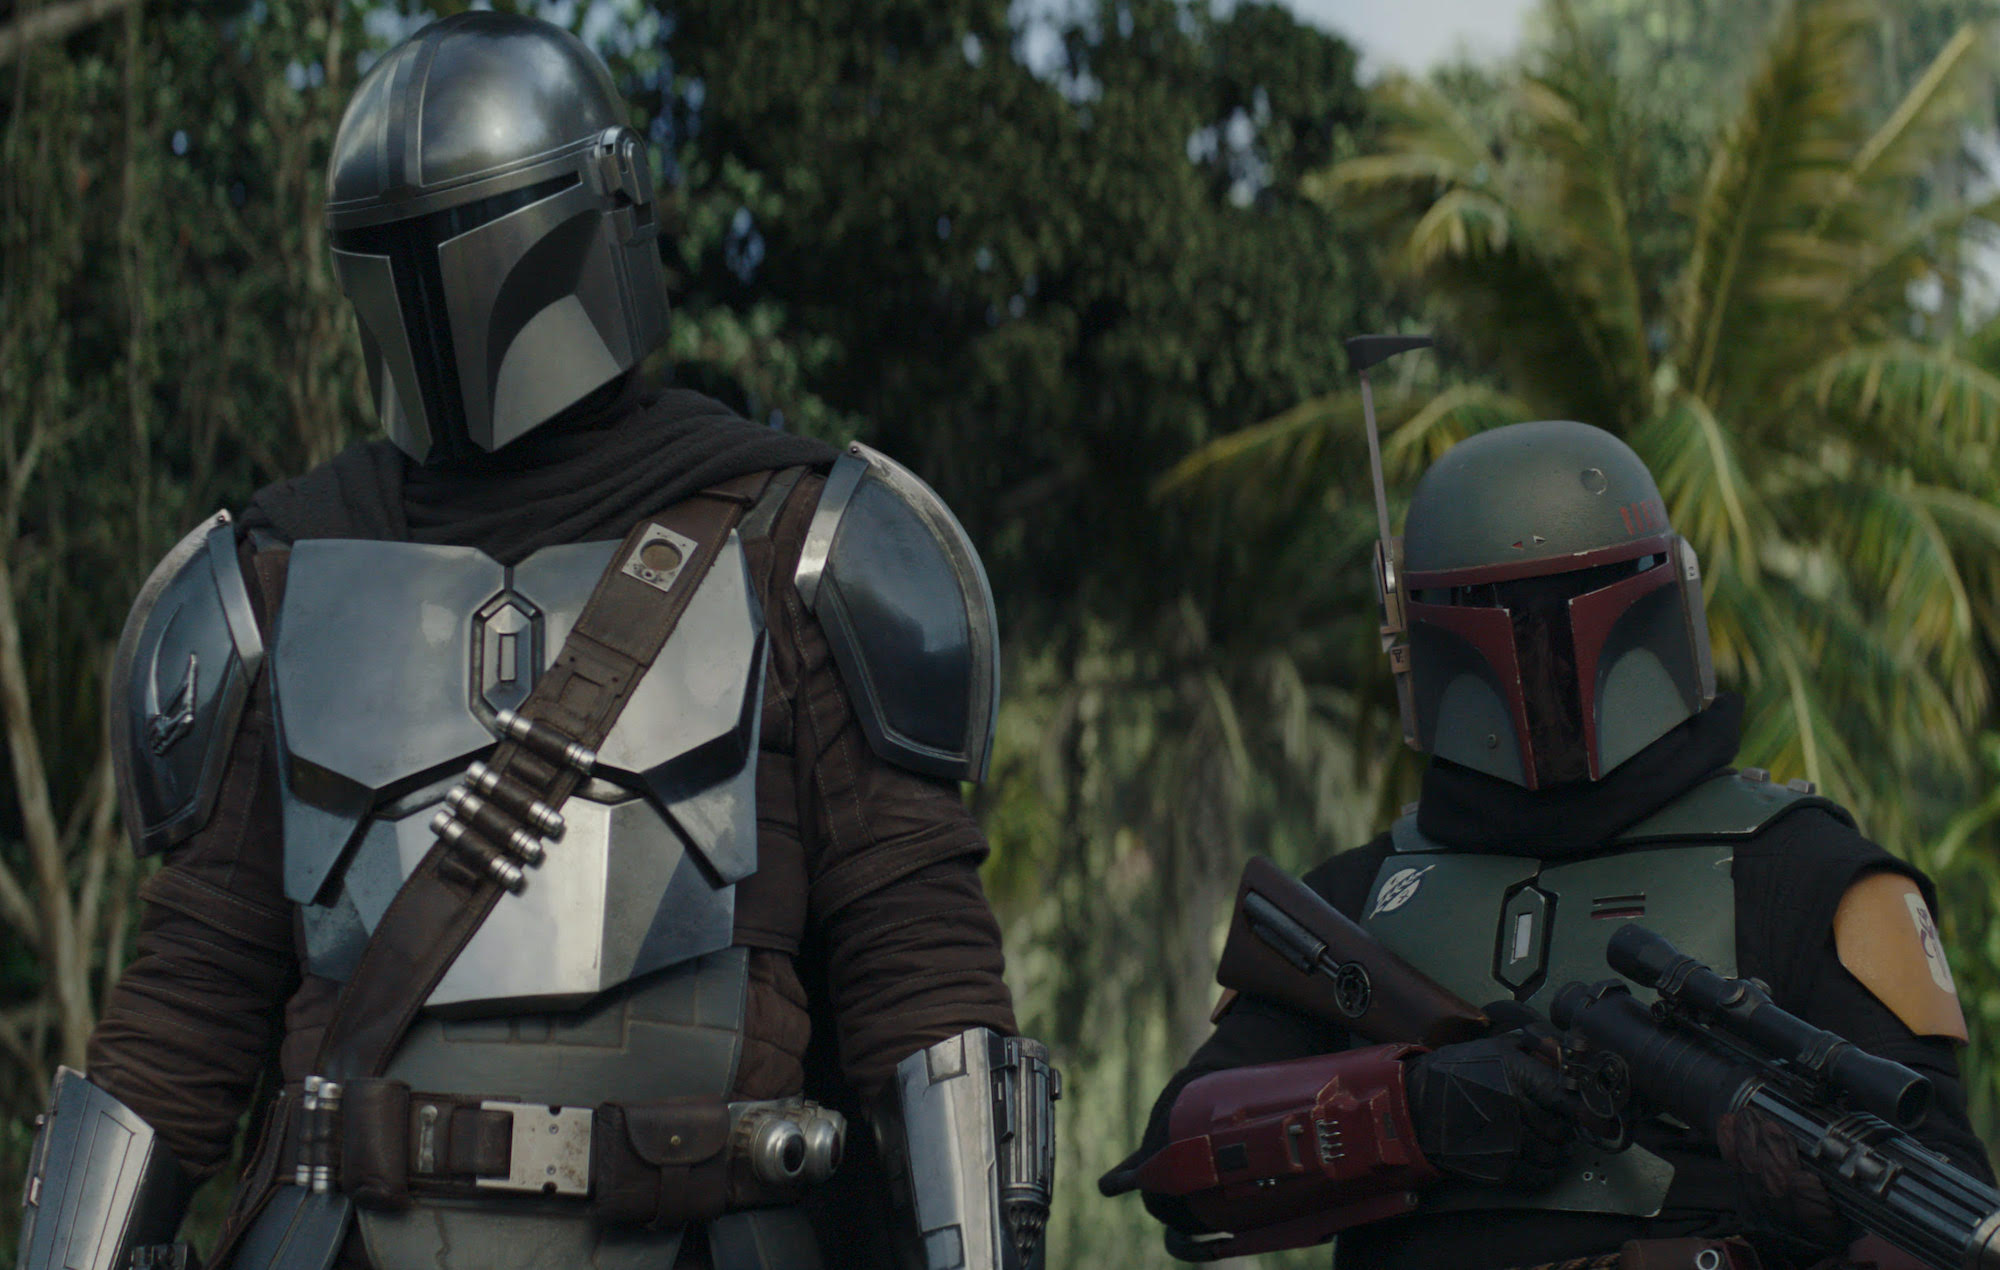 'The Mandalorian' star would return as Moff Gideon in spin-off